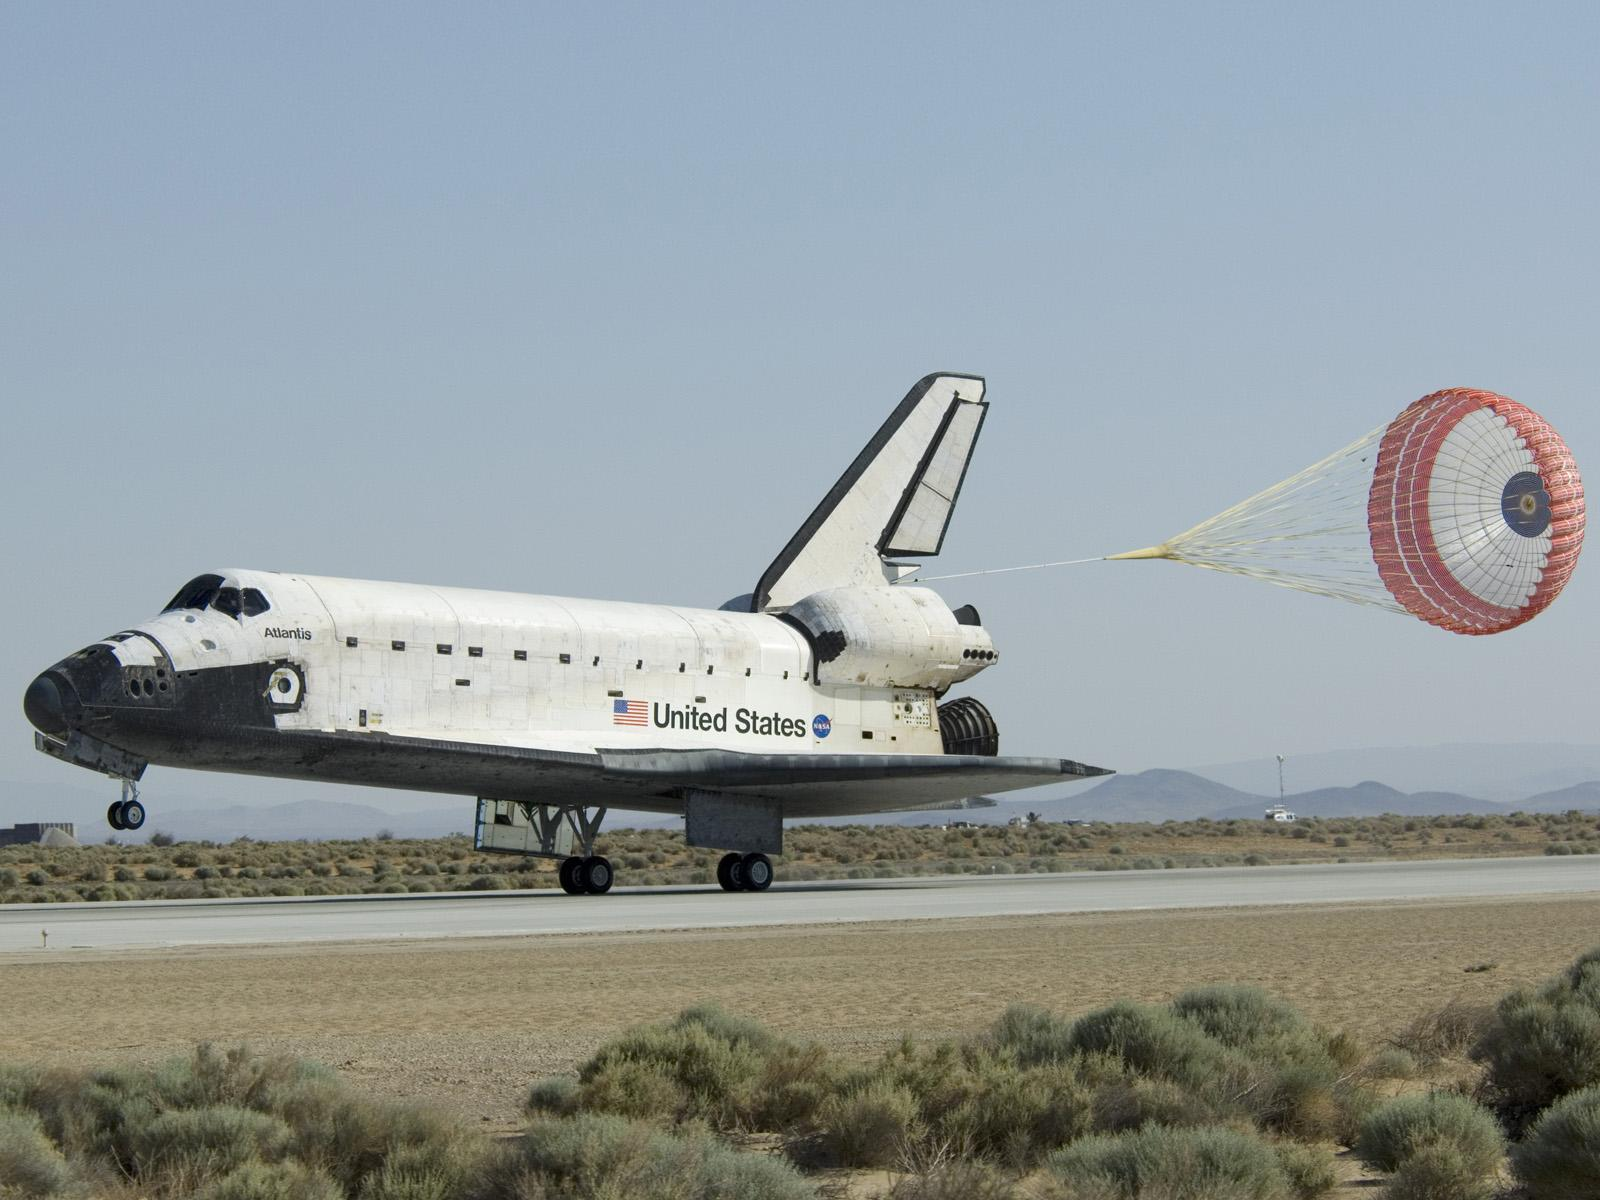 space shuttle landing at edwards air force base - photo #28